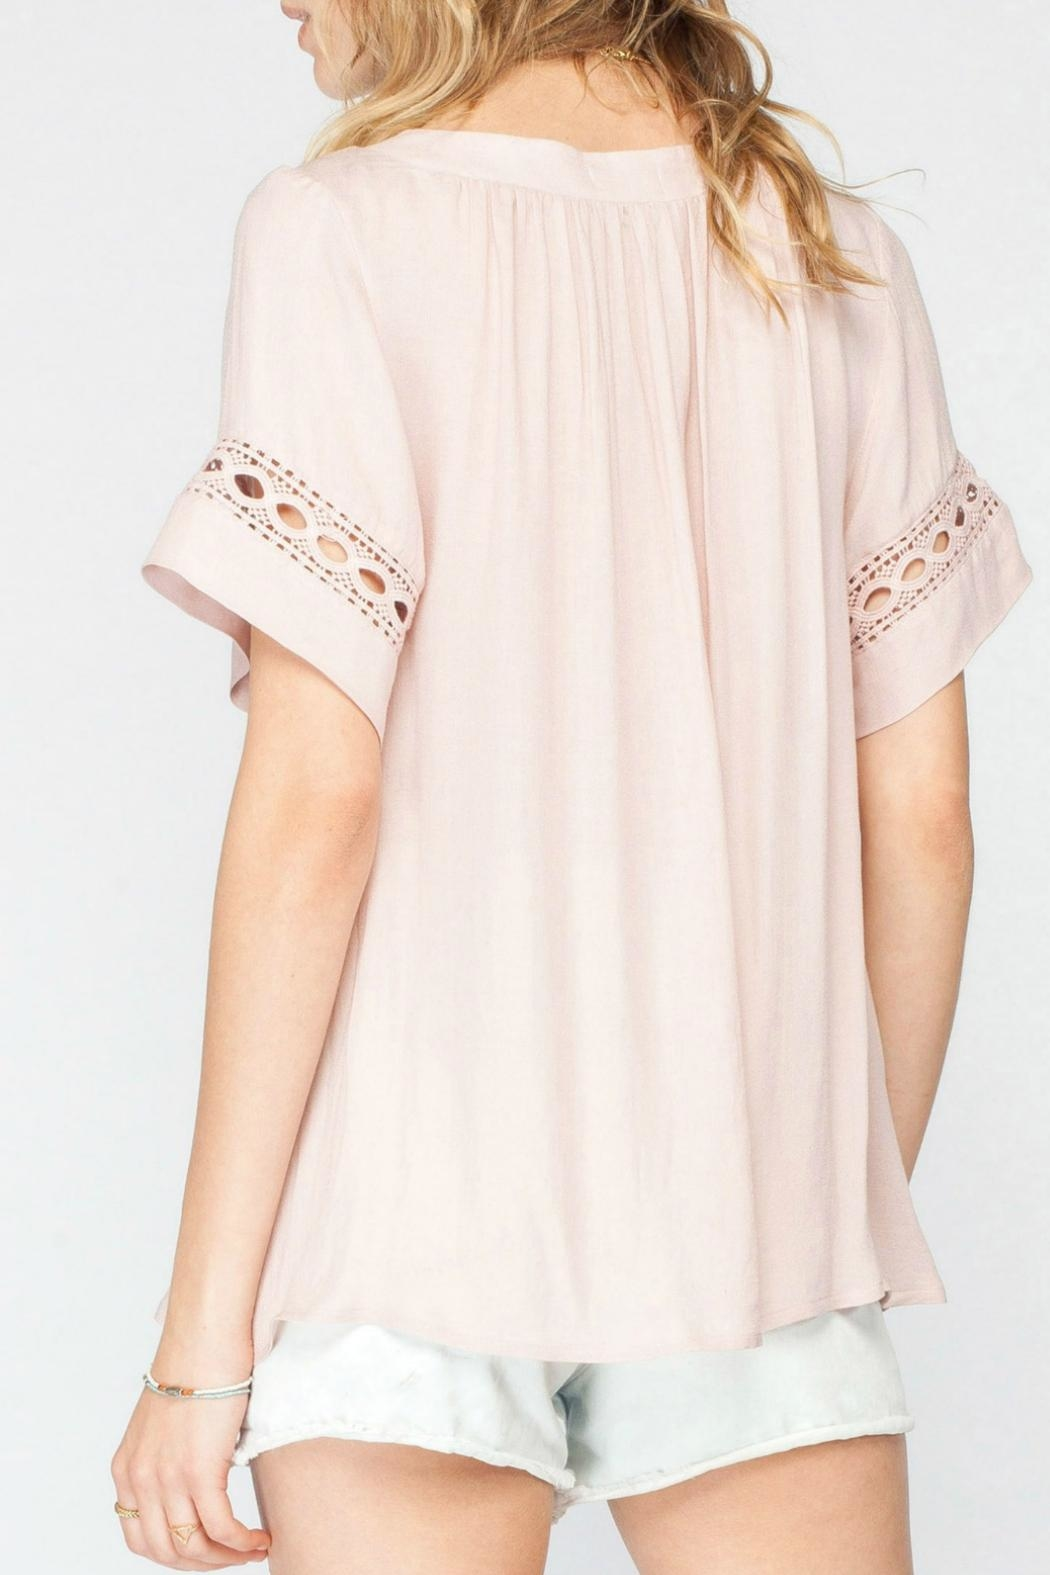 Gentle Fawn Crochet Pink Top - Side Cropped Image